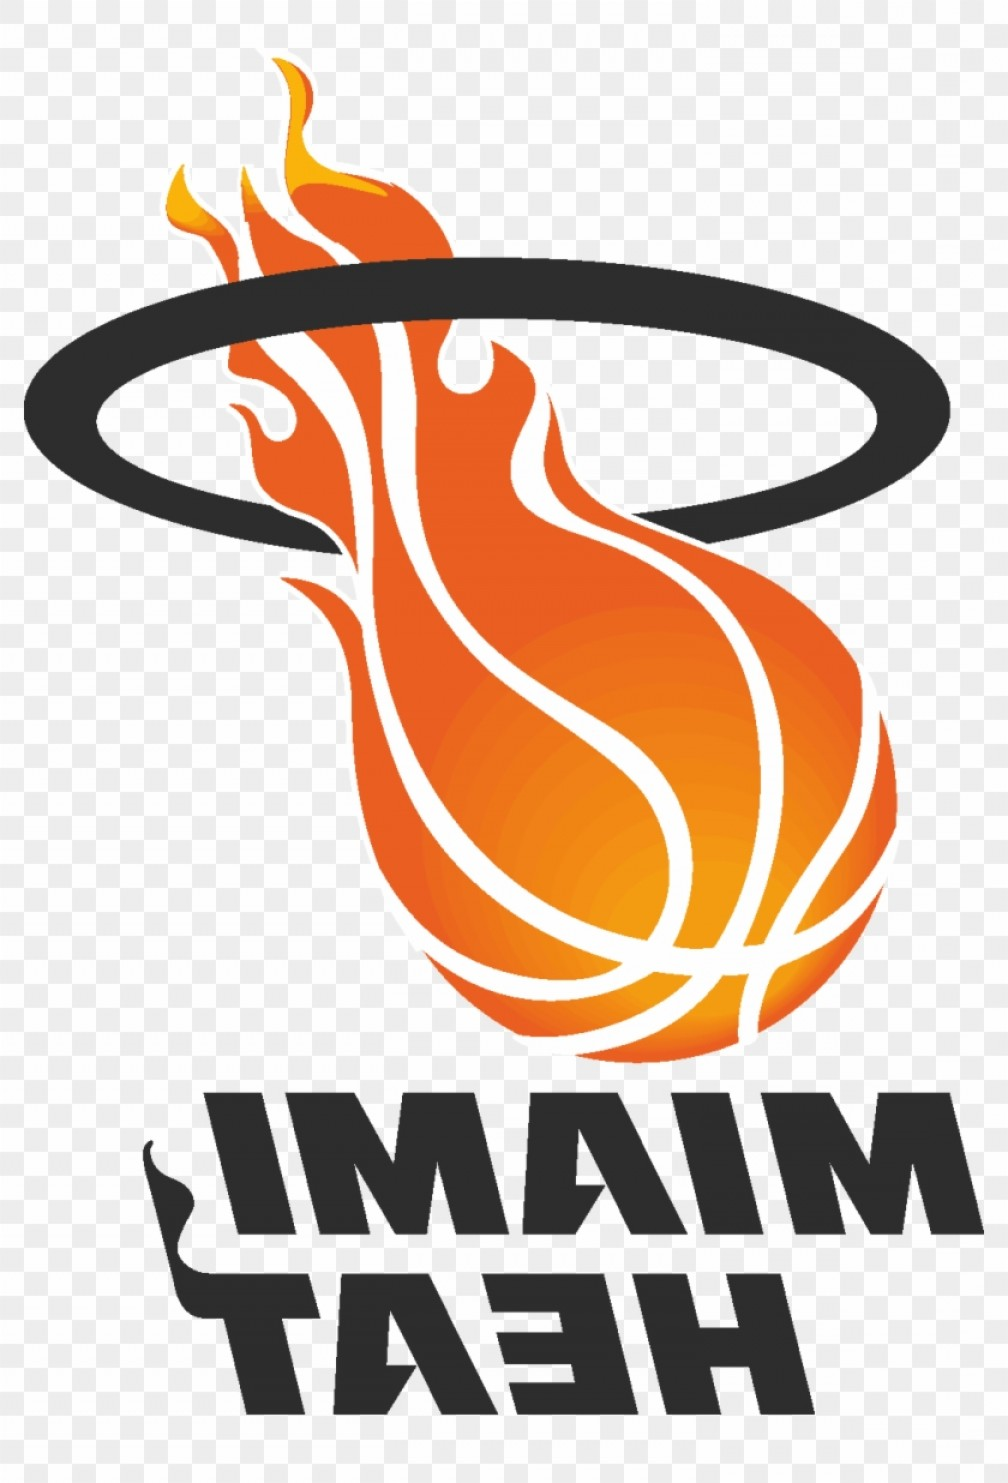 Mizkhhgaheat Logo Bmiami Heatd Vector Eps Free Download.